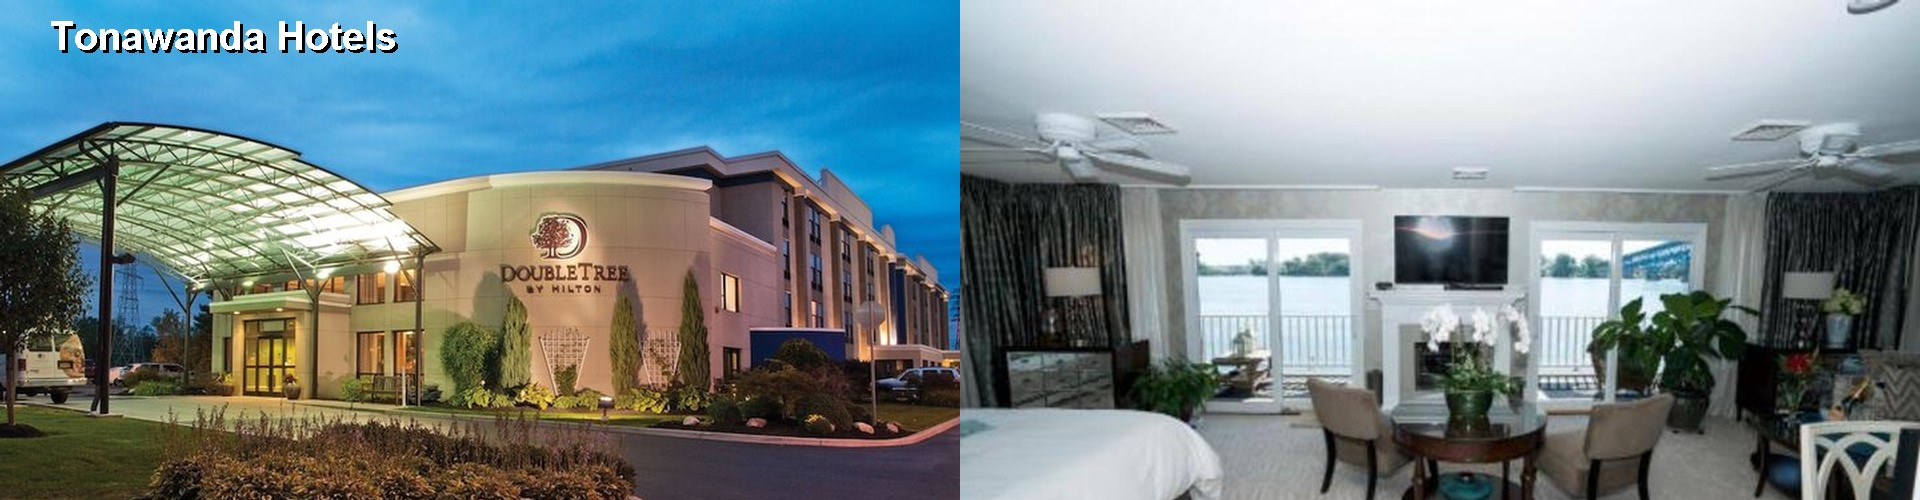 4 Best Hotels near Tonawanda